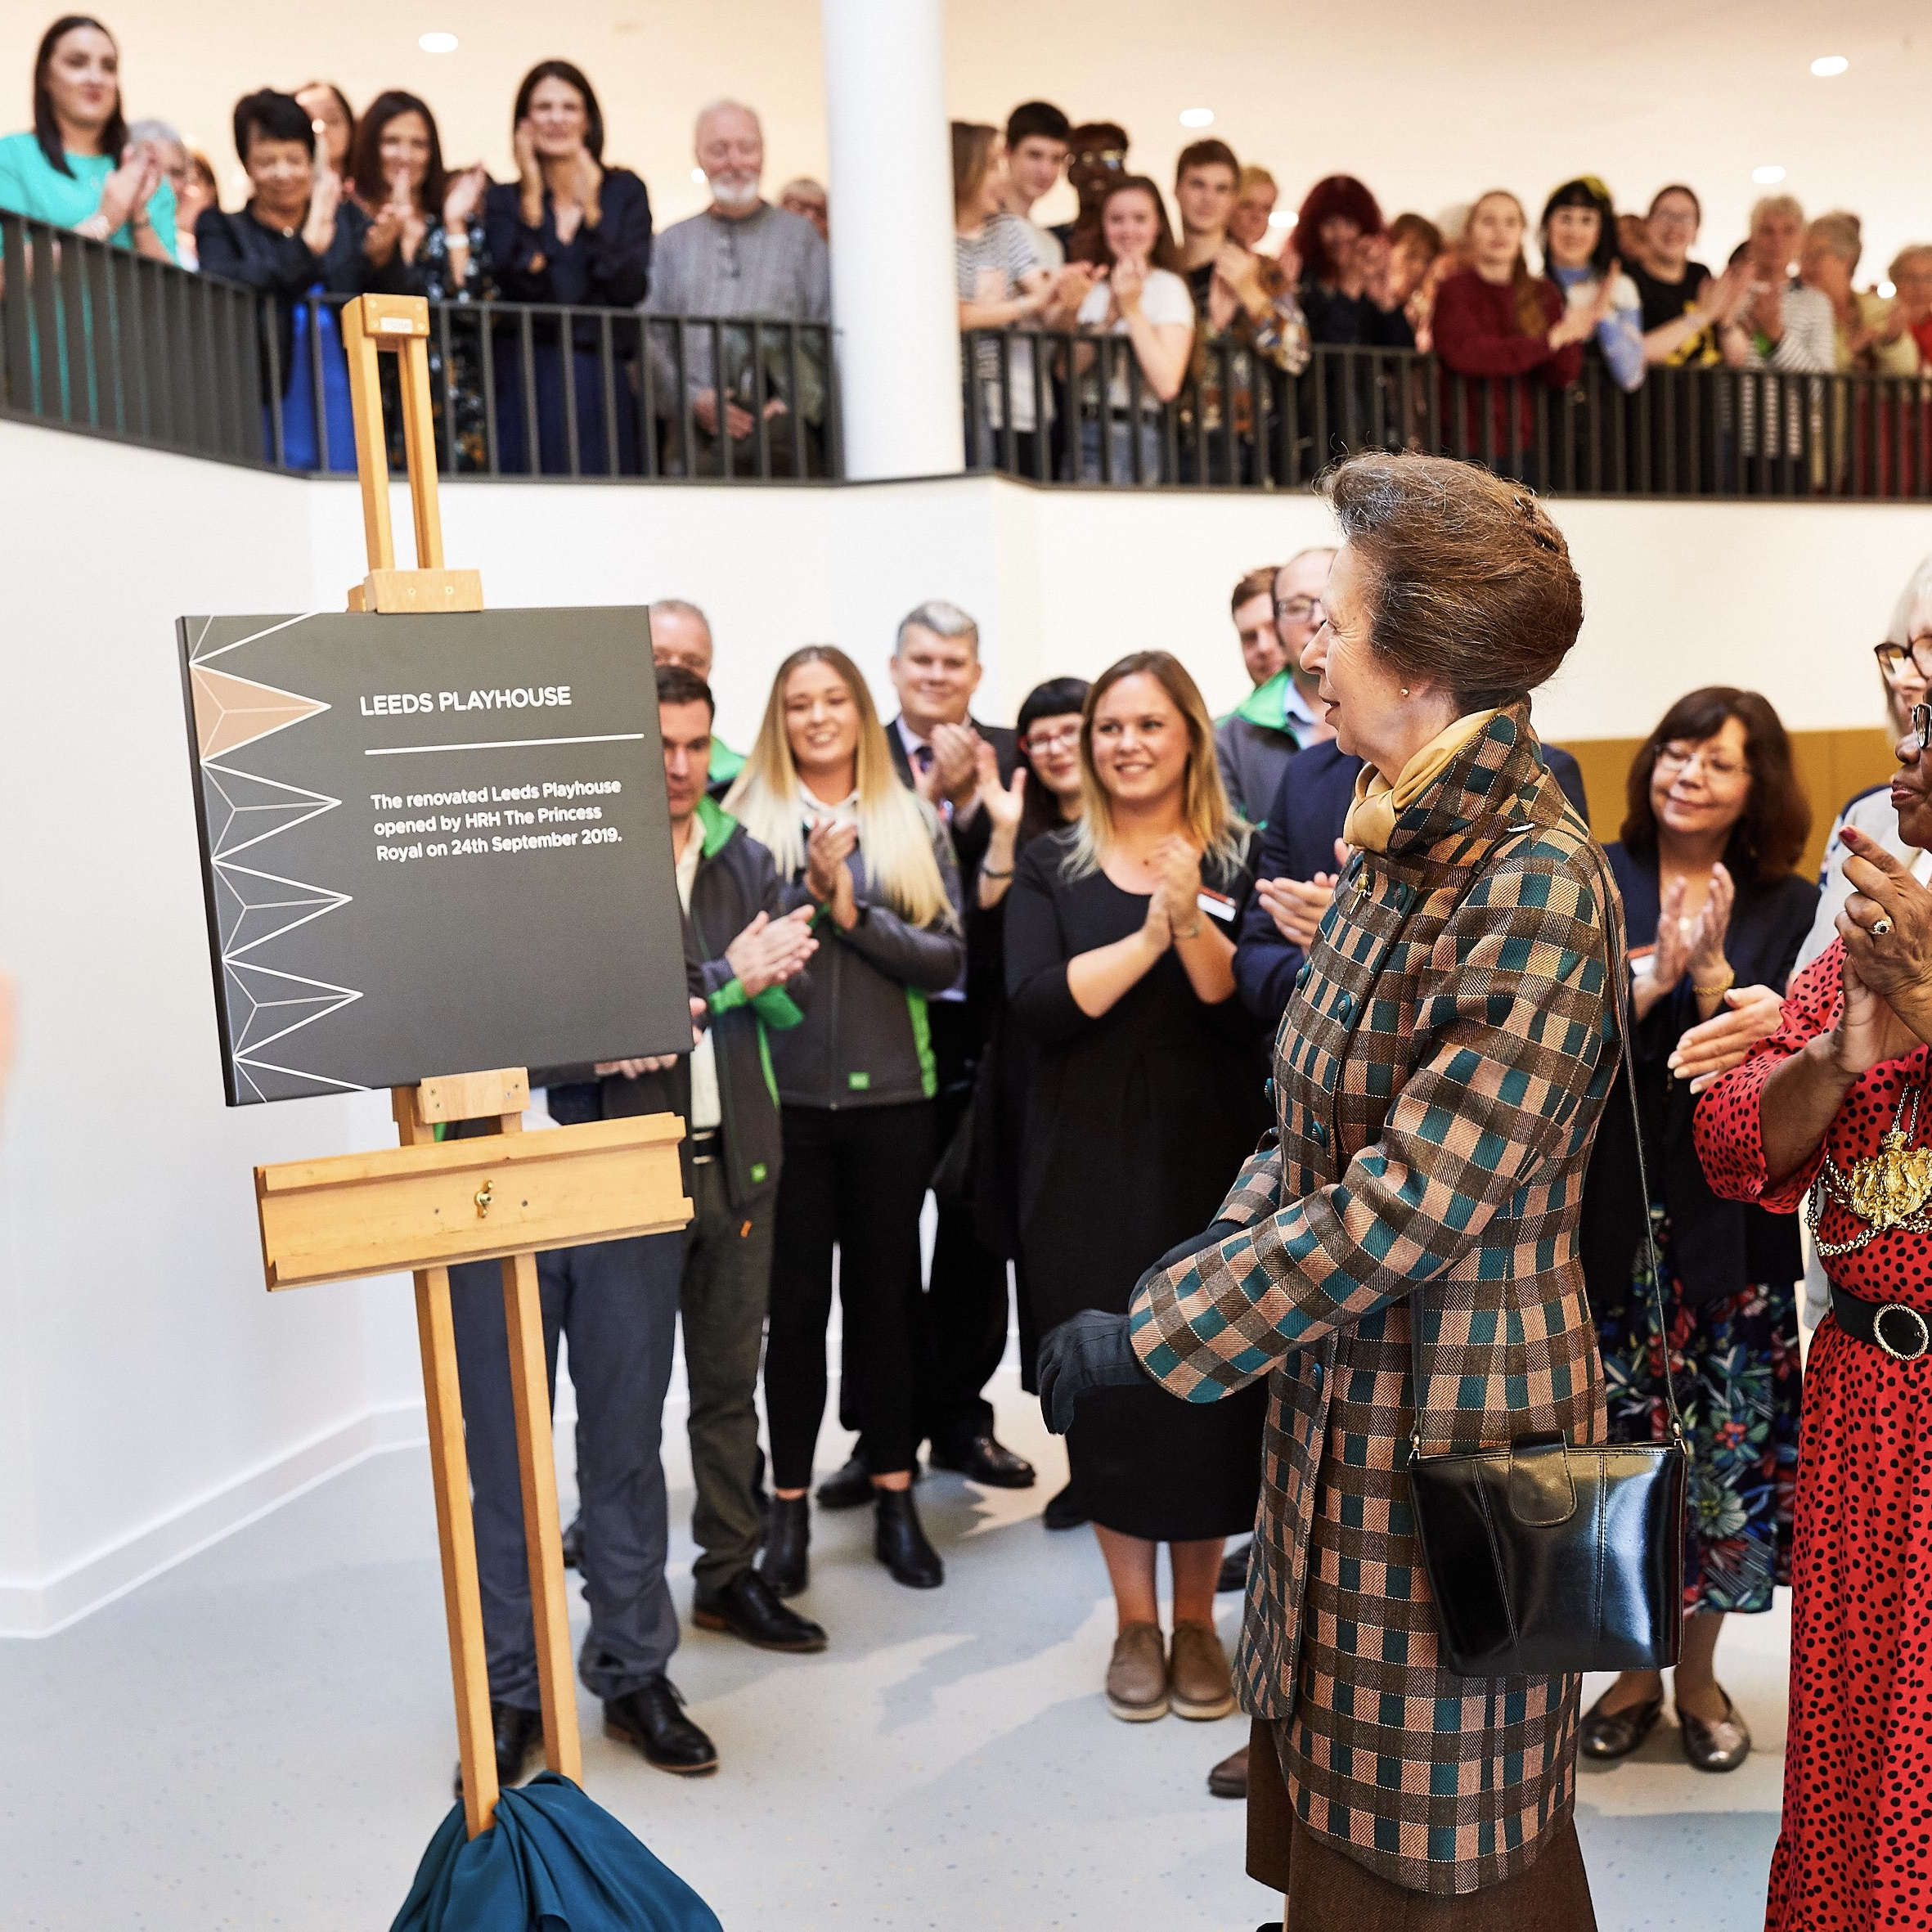 Image of Princess Anne at the opening of Leeds Playhouse